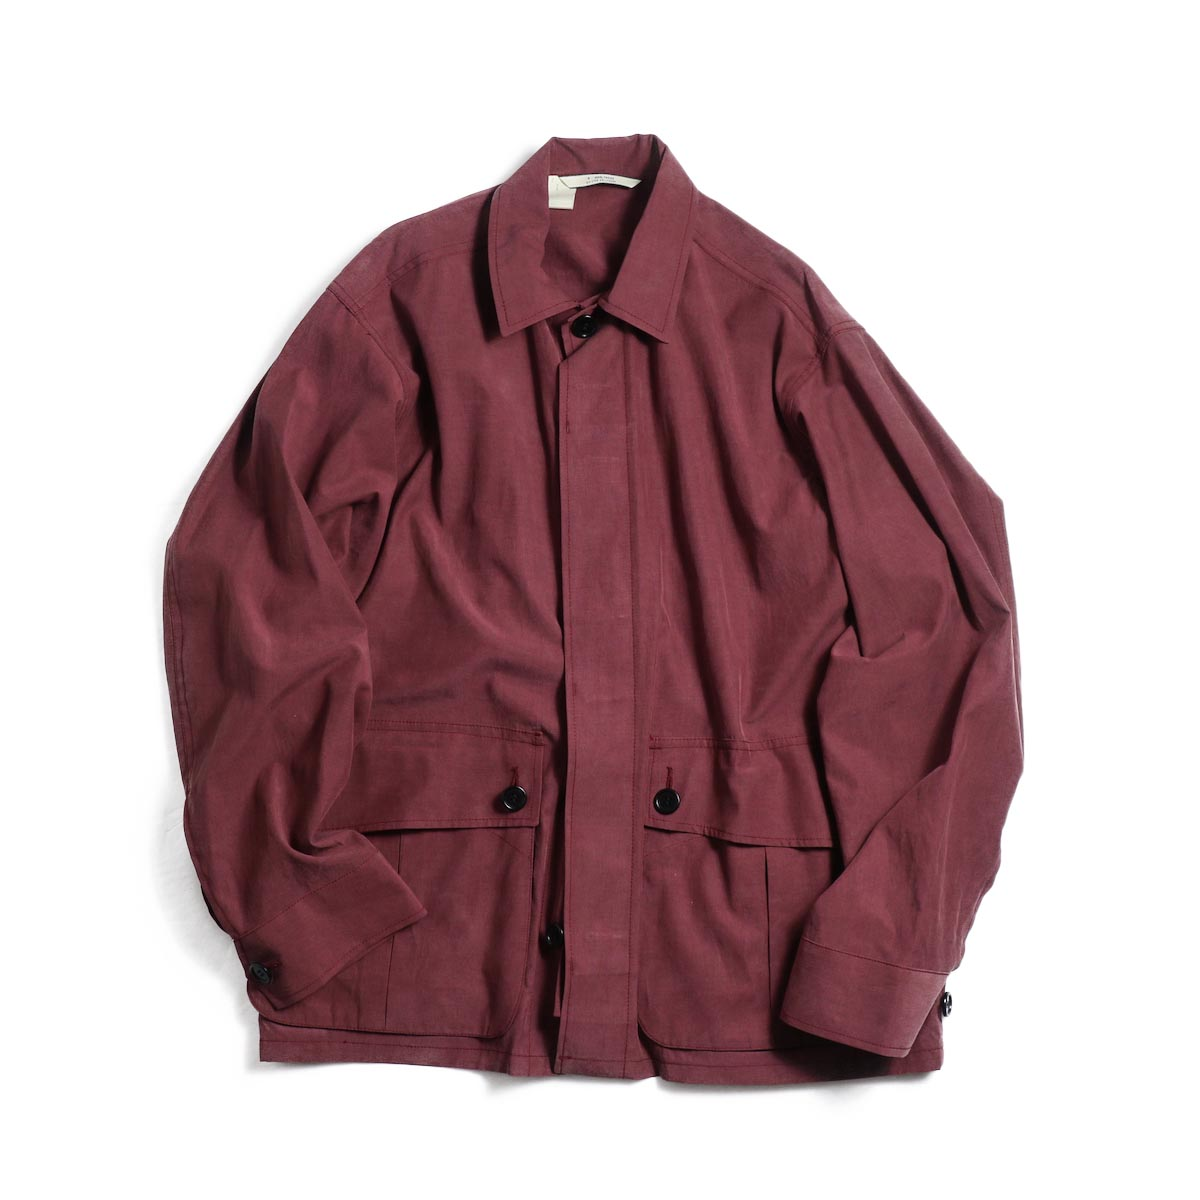 N.HOOLYWOOD / 191-BL09 Hunting Coverall Jacket -Burgundy